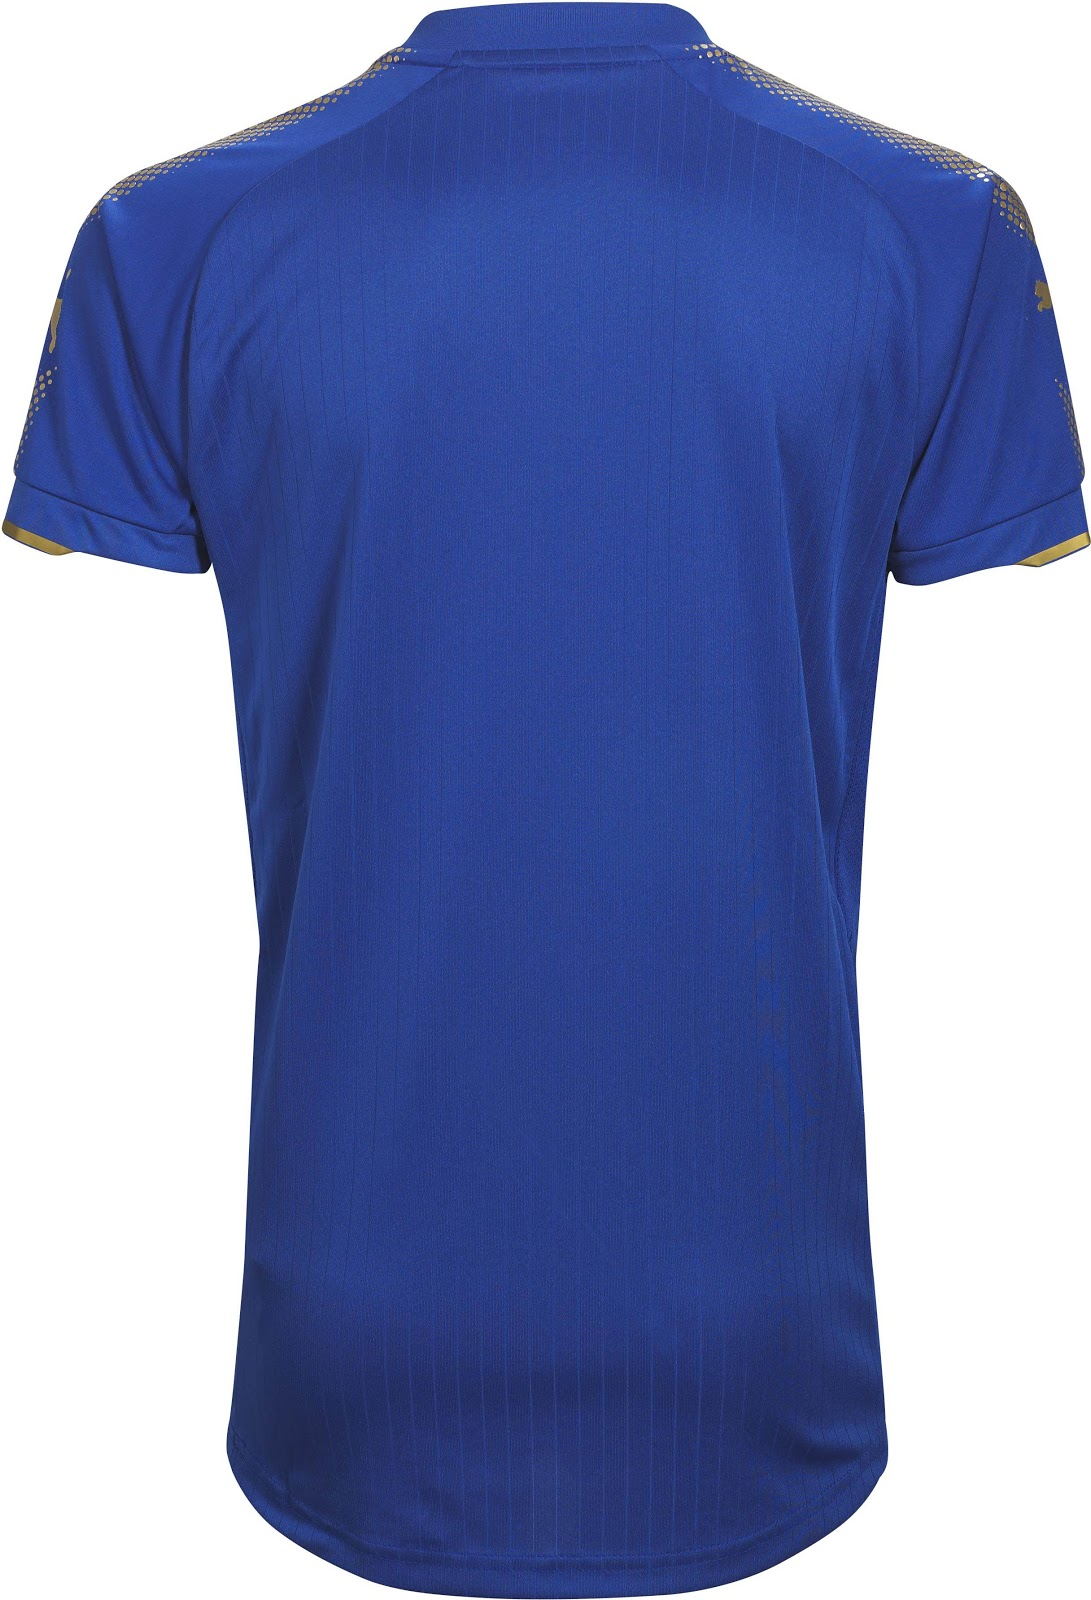 leicester-city-17-18-home-kit-back